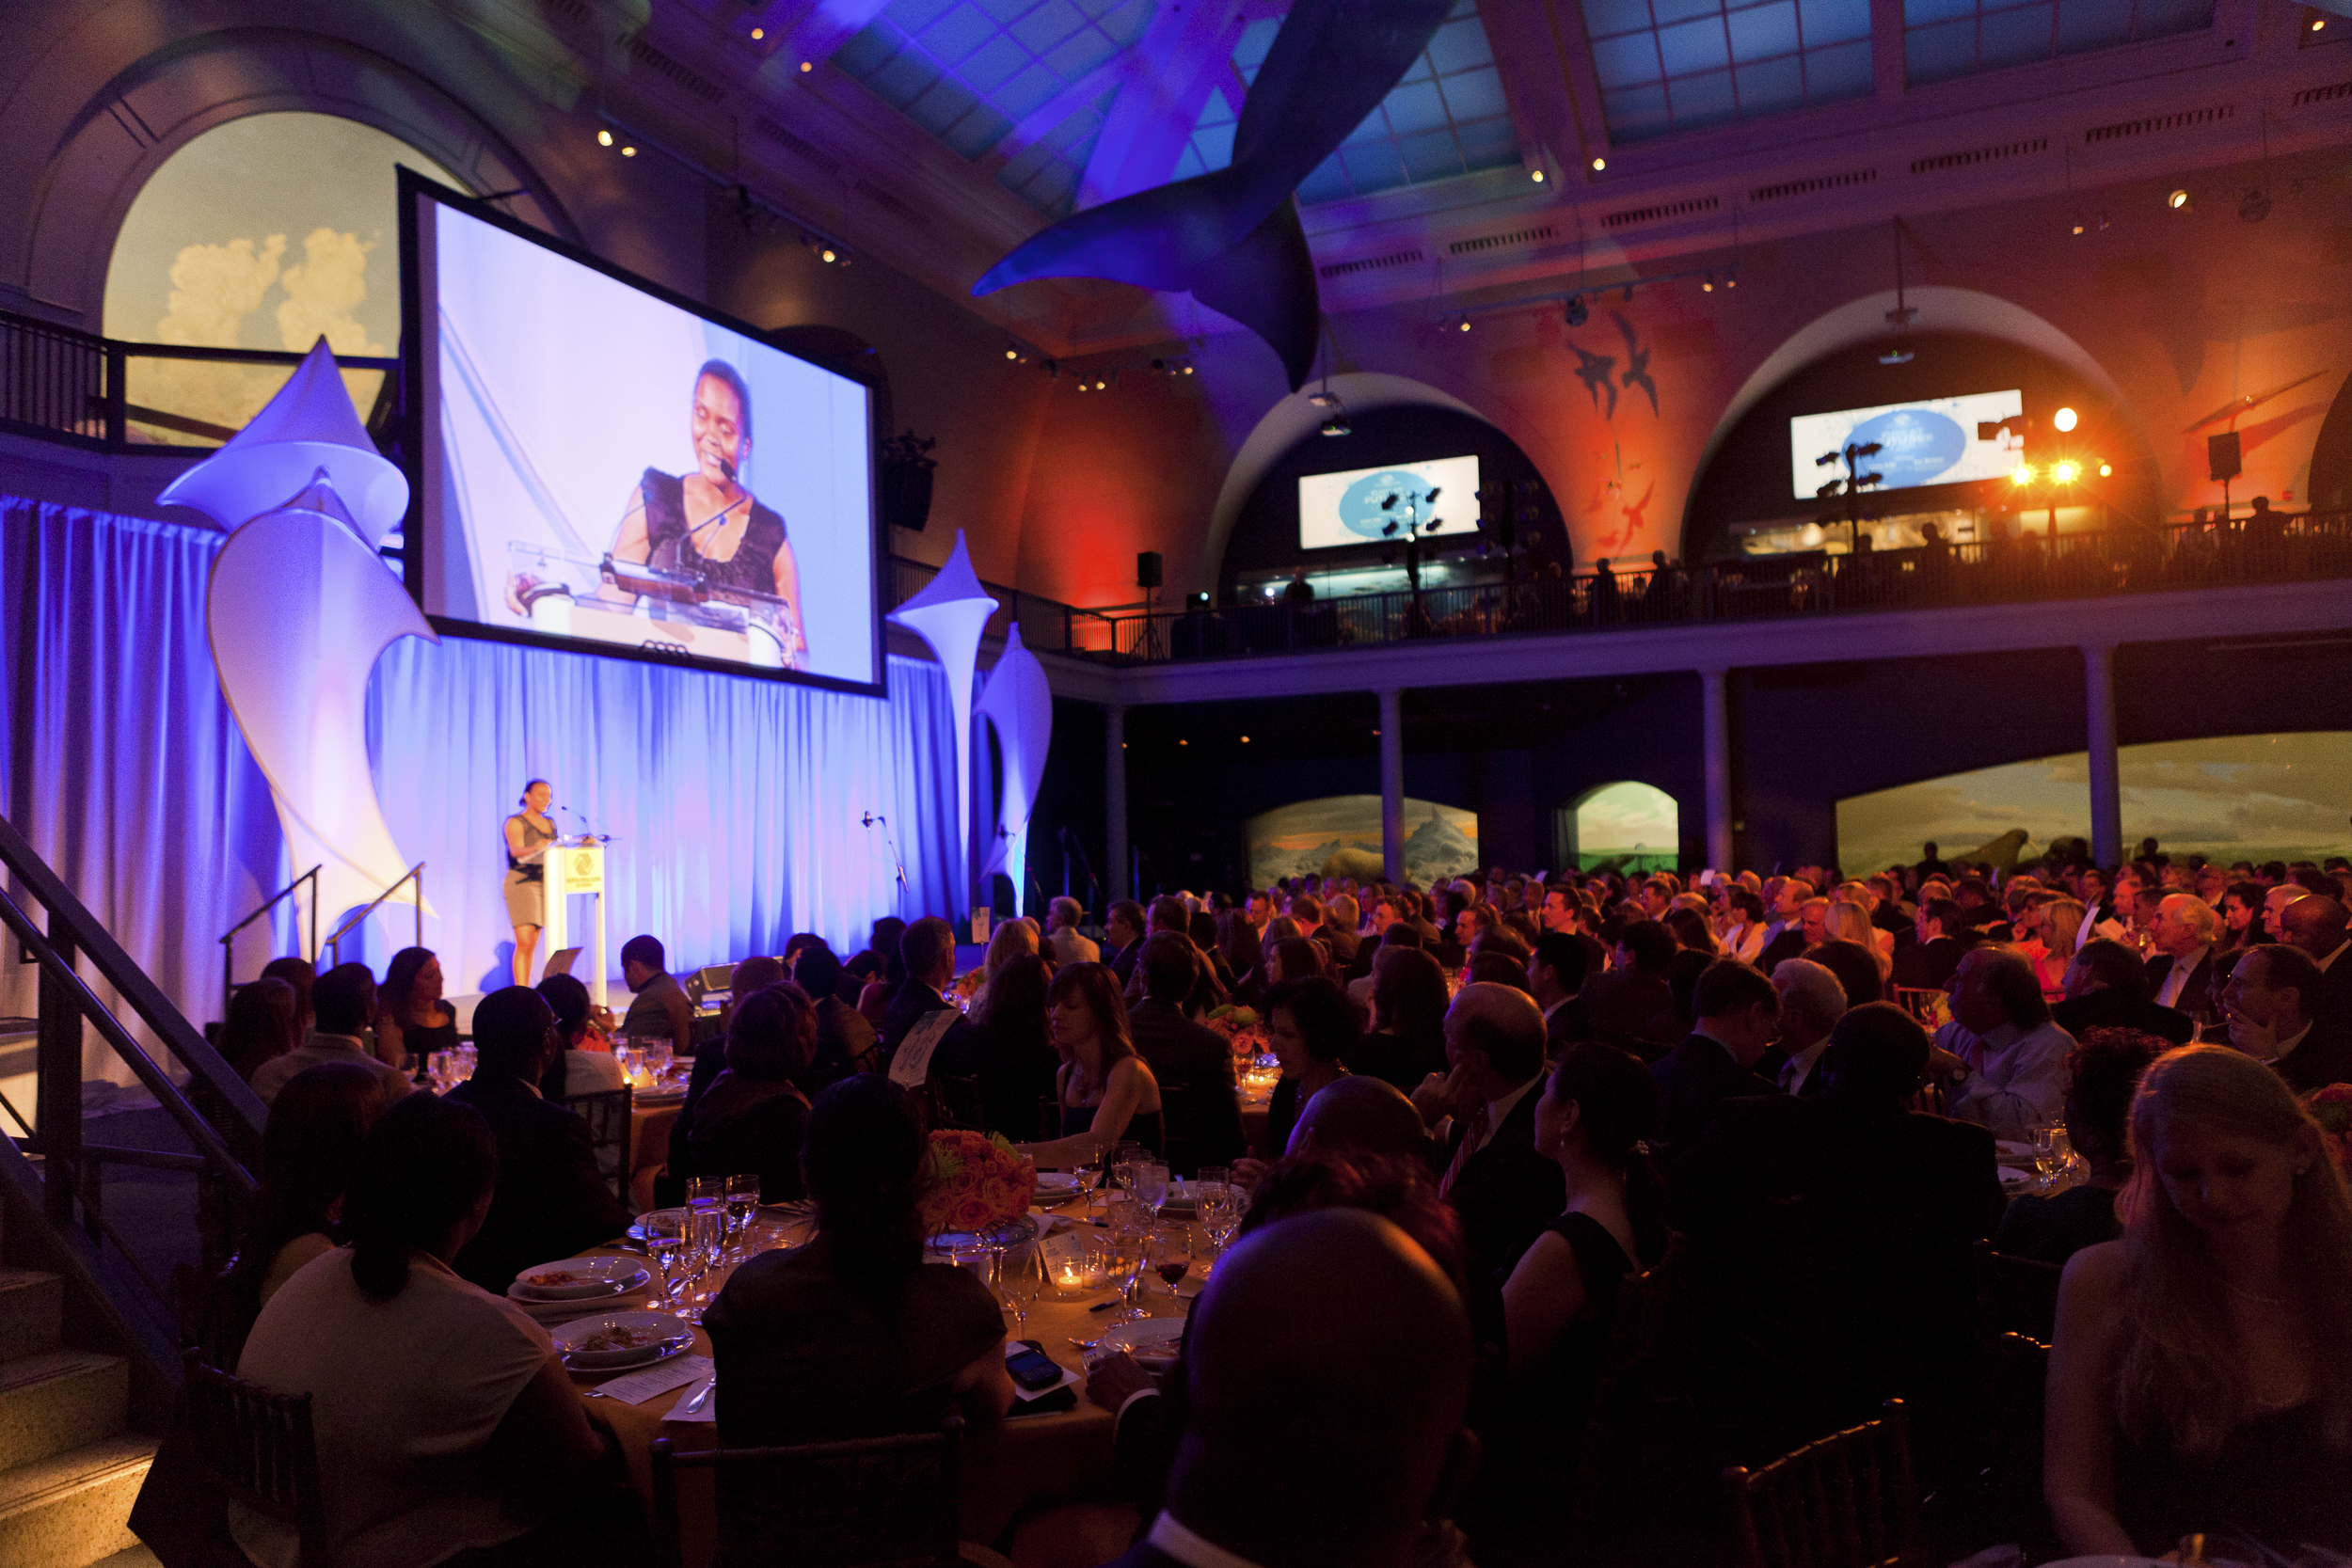 ceci-new-york-gives-back-boys-and-girls-club-of-america-great-futures-gala-2011-invitations-party-decor-museum-of-natural-history-event--9.jpg